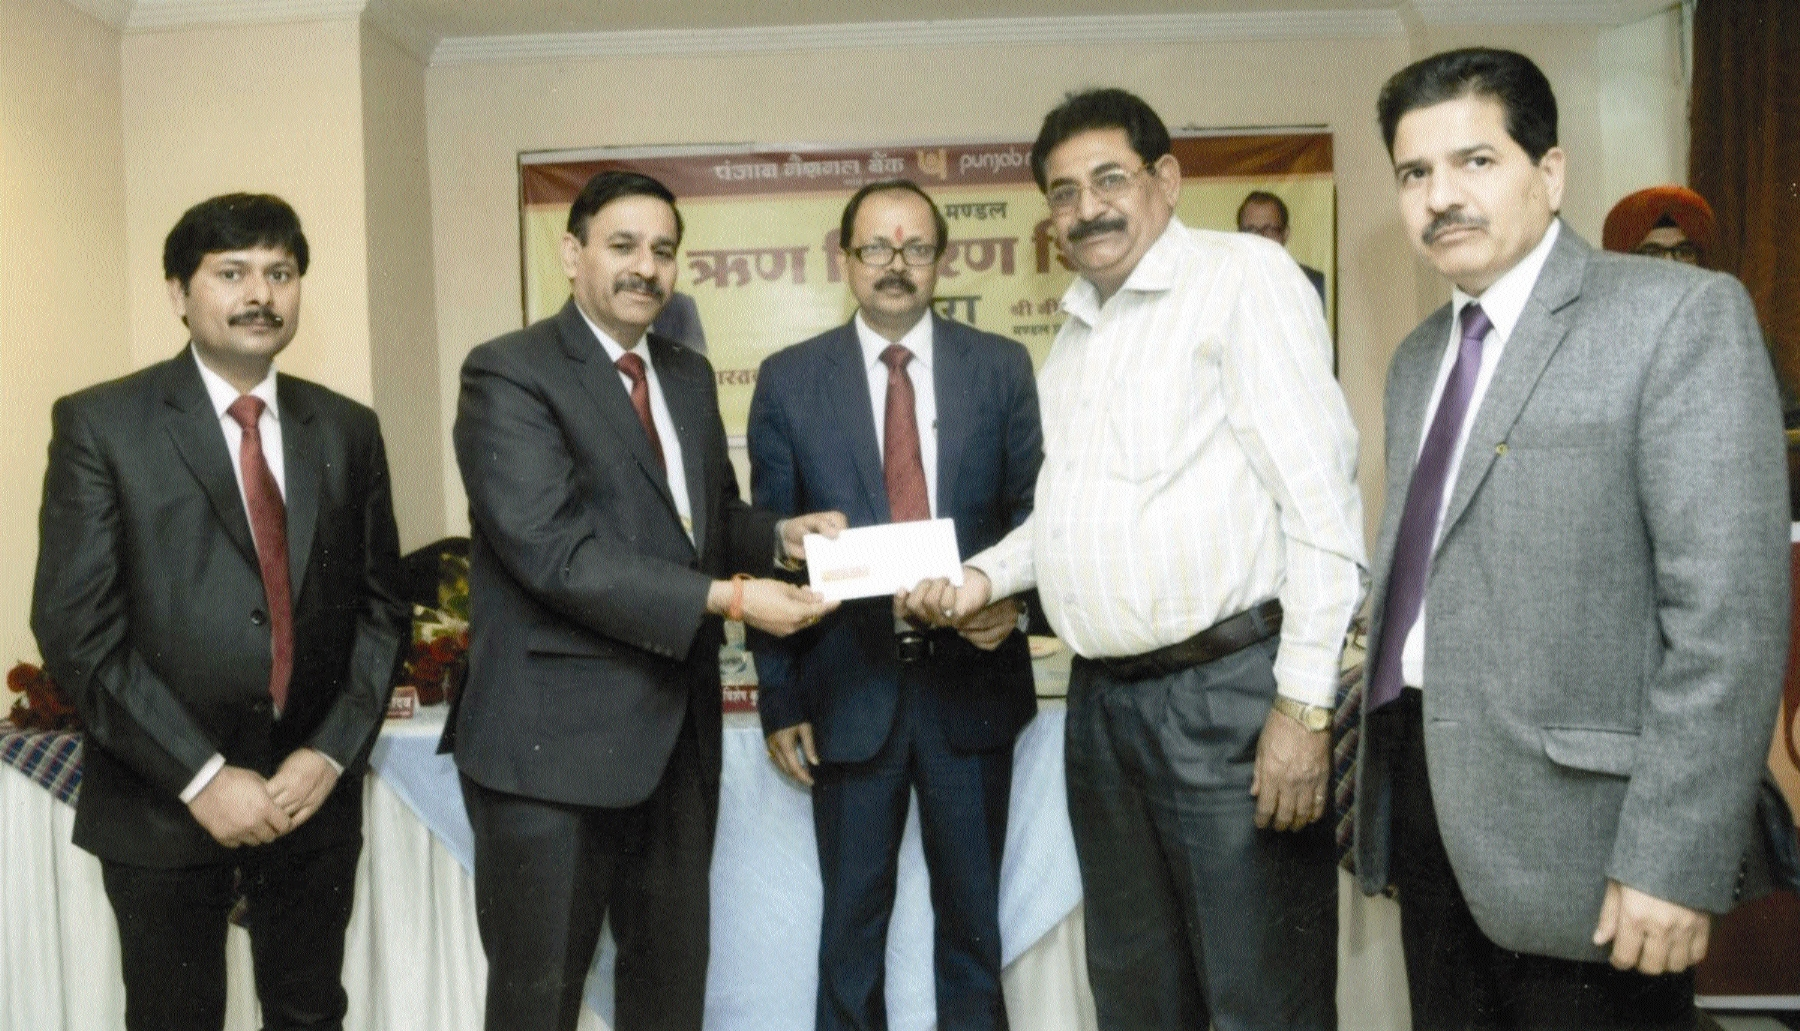 PNB MP Regional Manager V K Shrivastava visits Jabalpur, distributes loan